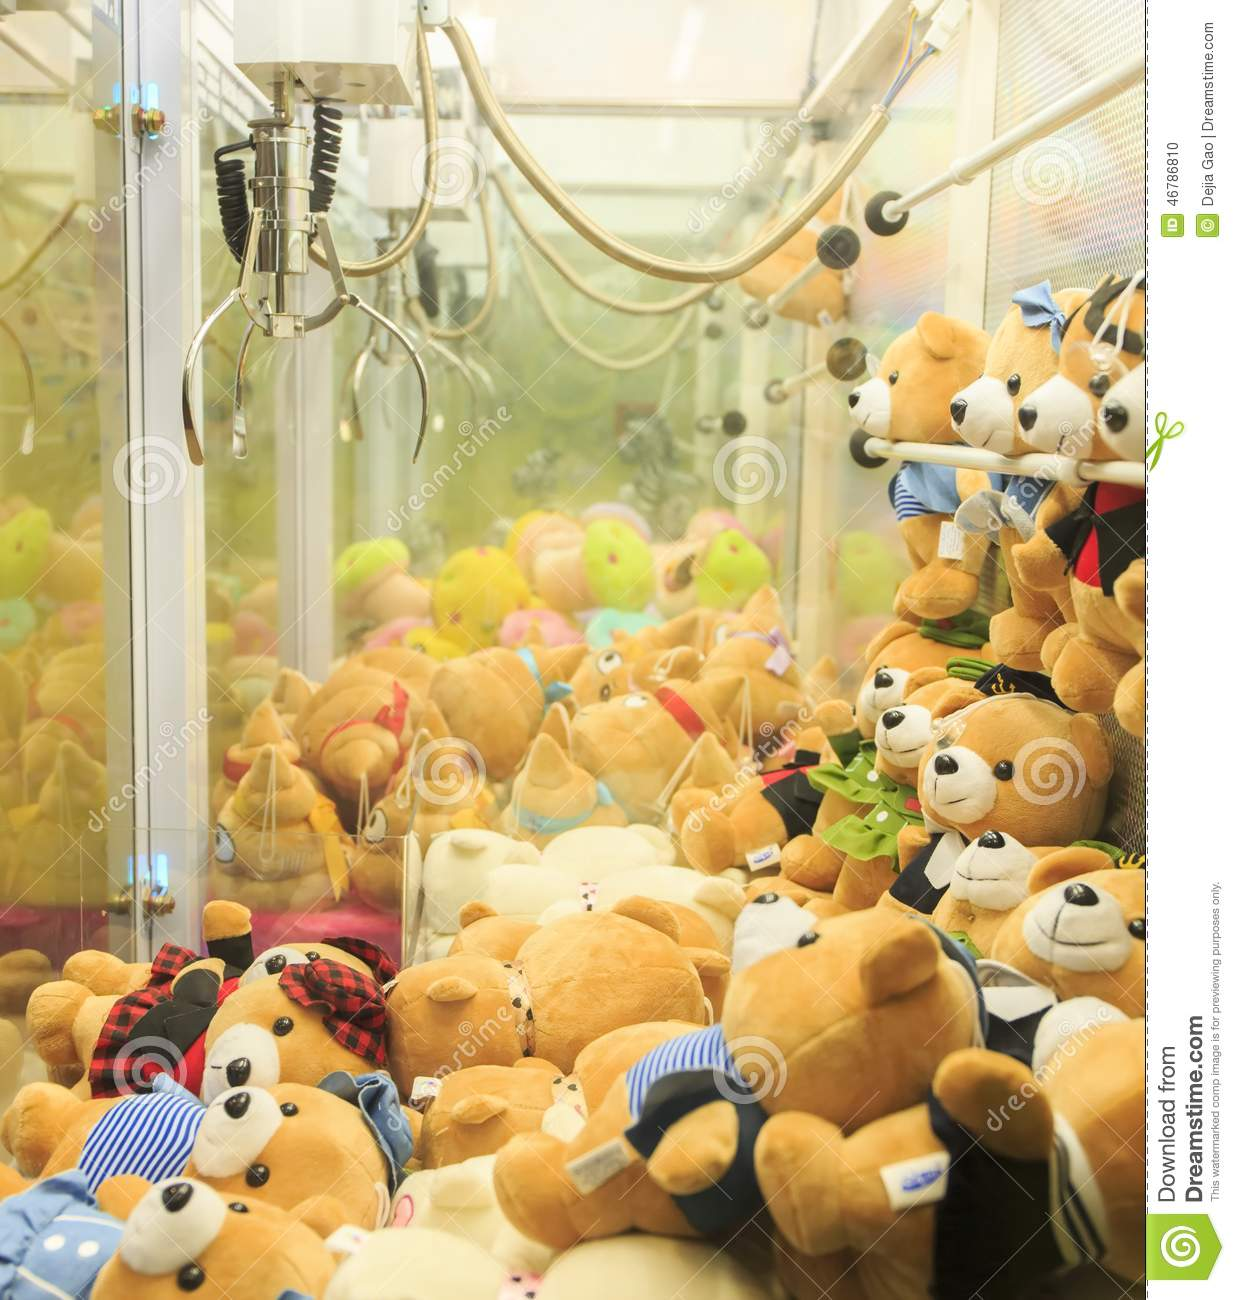 Toy Claw Machine Game : Arcade claw machine toys crane game editorial image